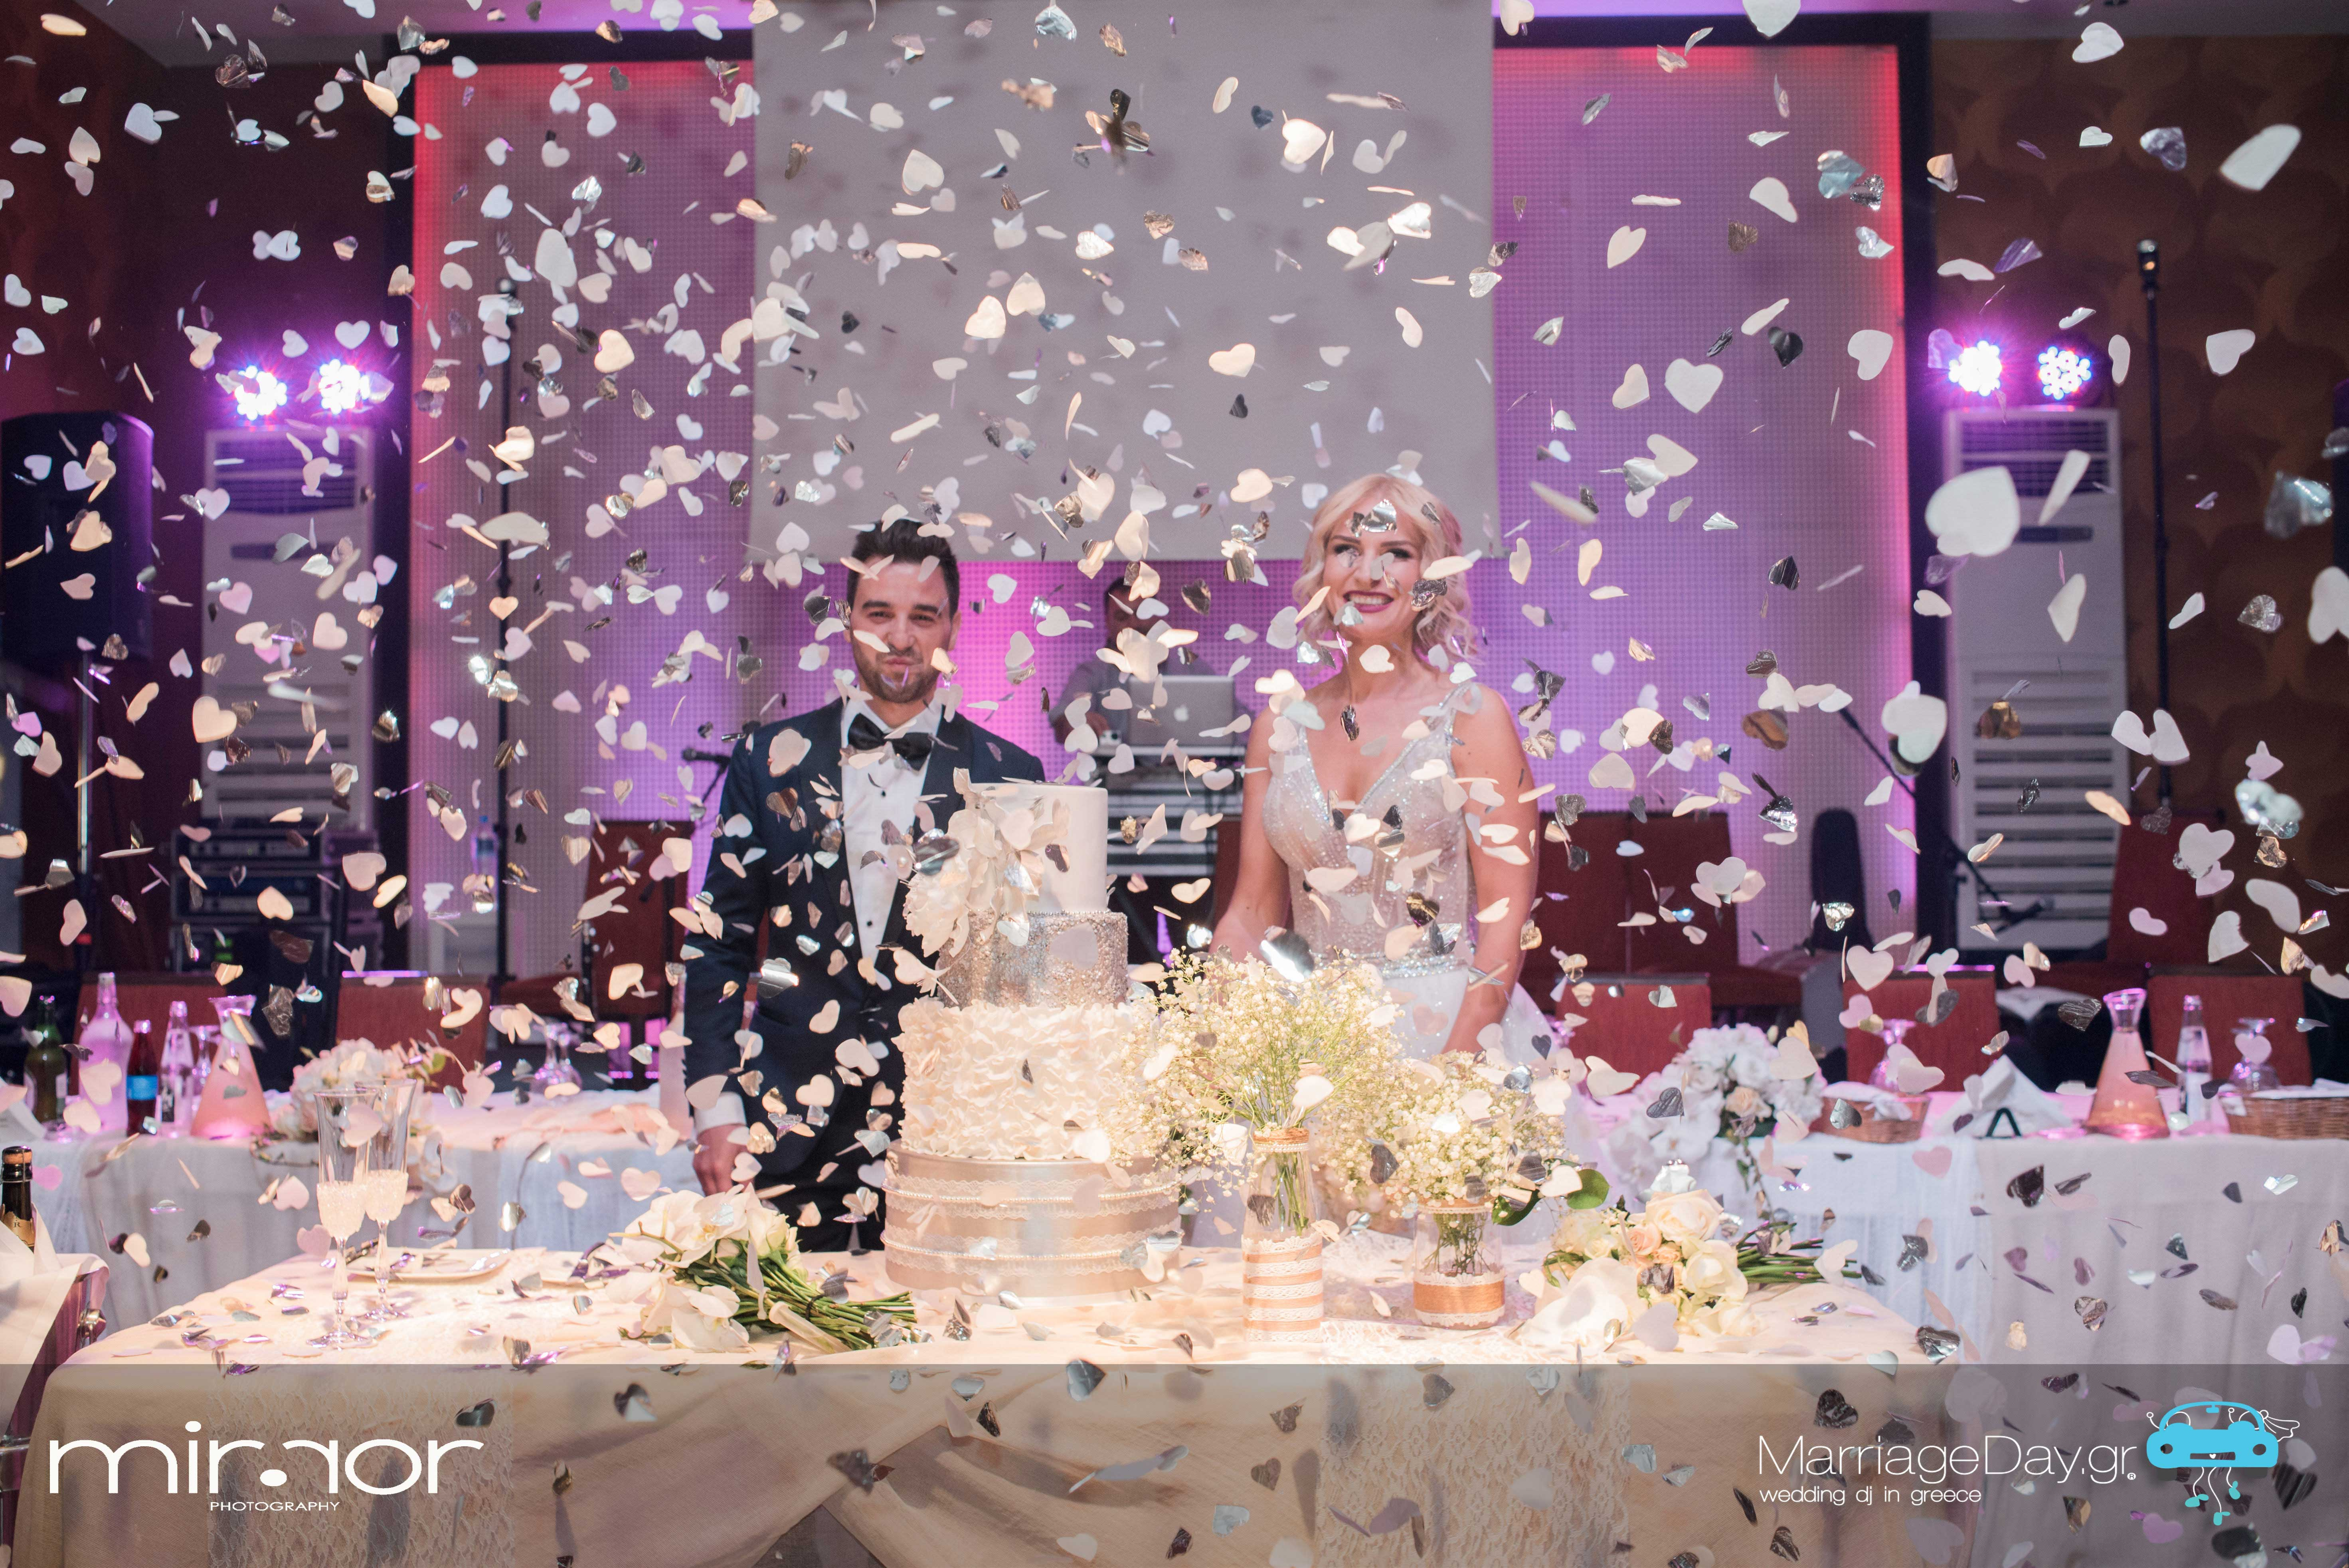 Marriageday.gr | confetti, streamers, rose pedals shots